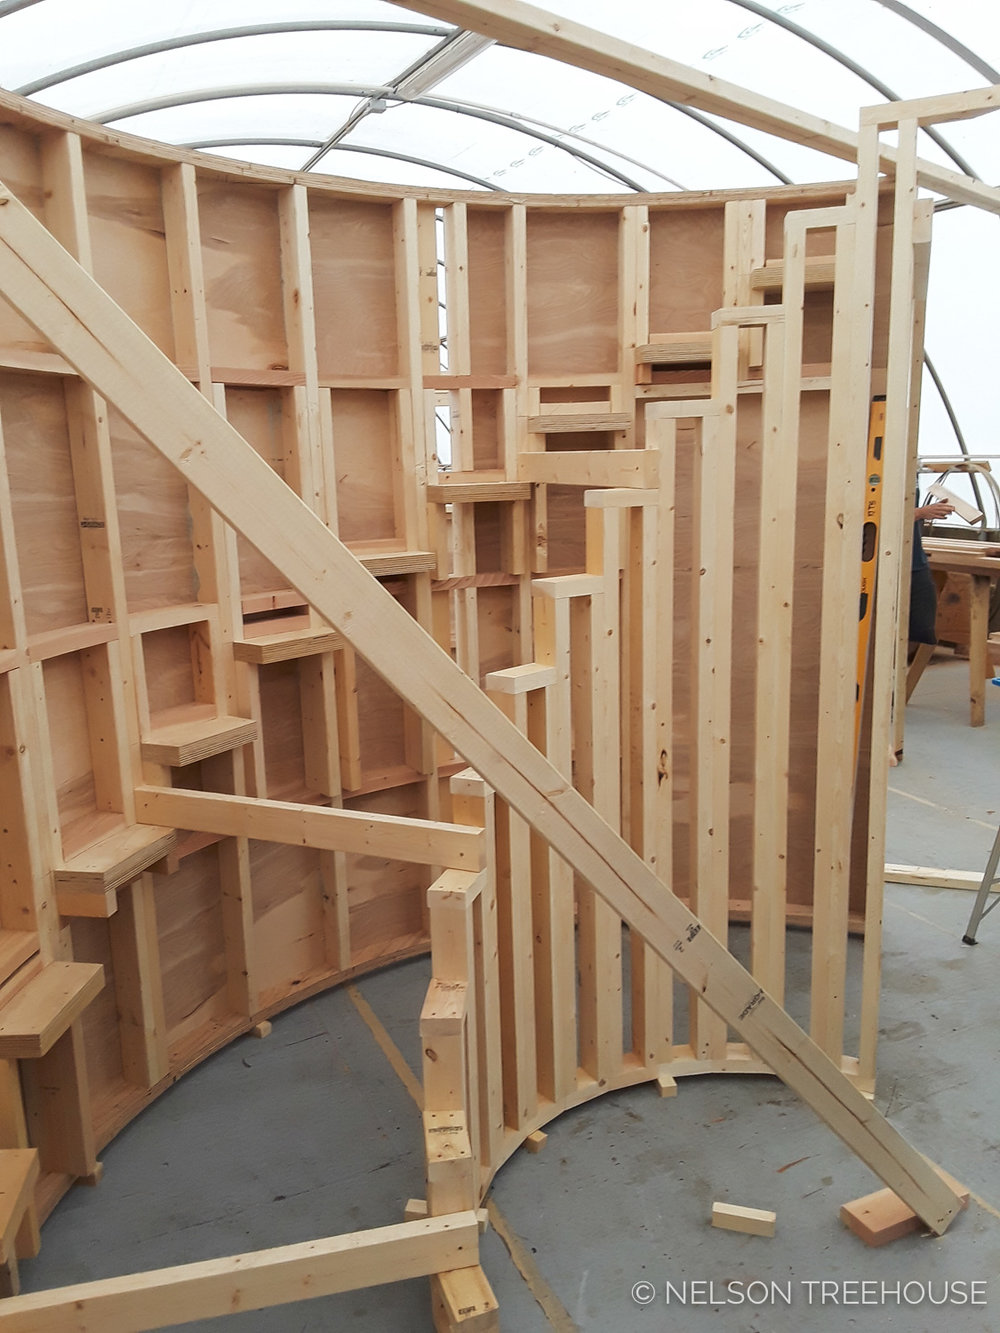 Spiral Staircase mocked up inside the prefab shop